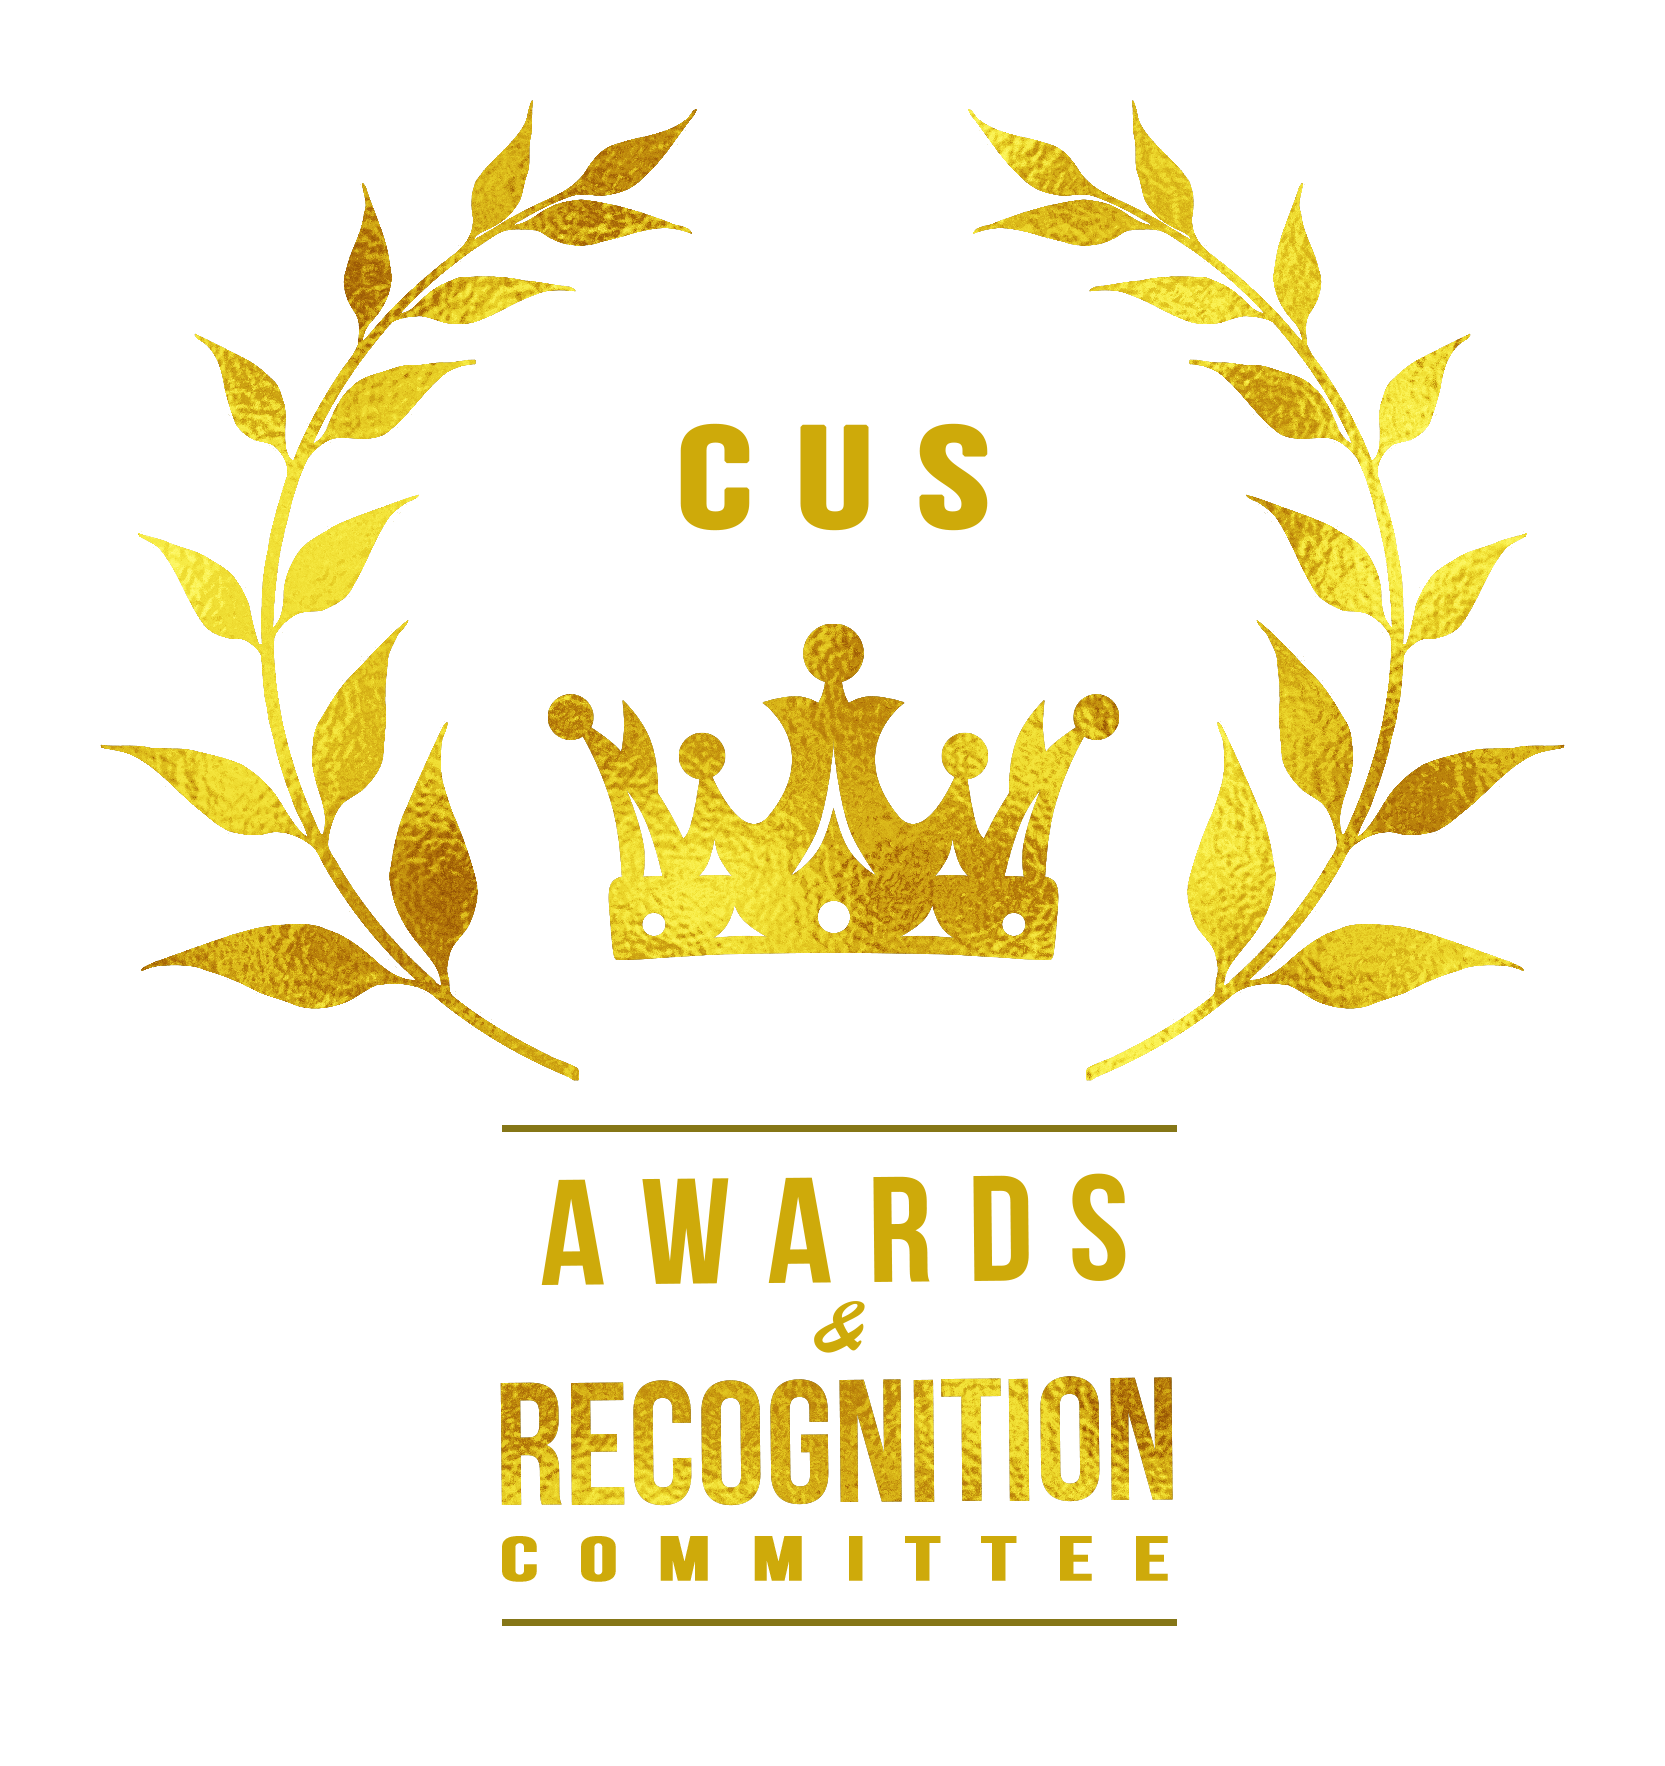 Award transparent recognition. About awards committee final